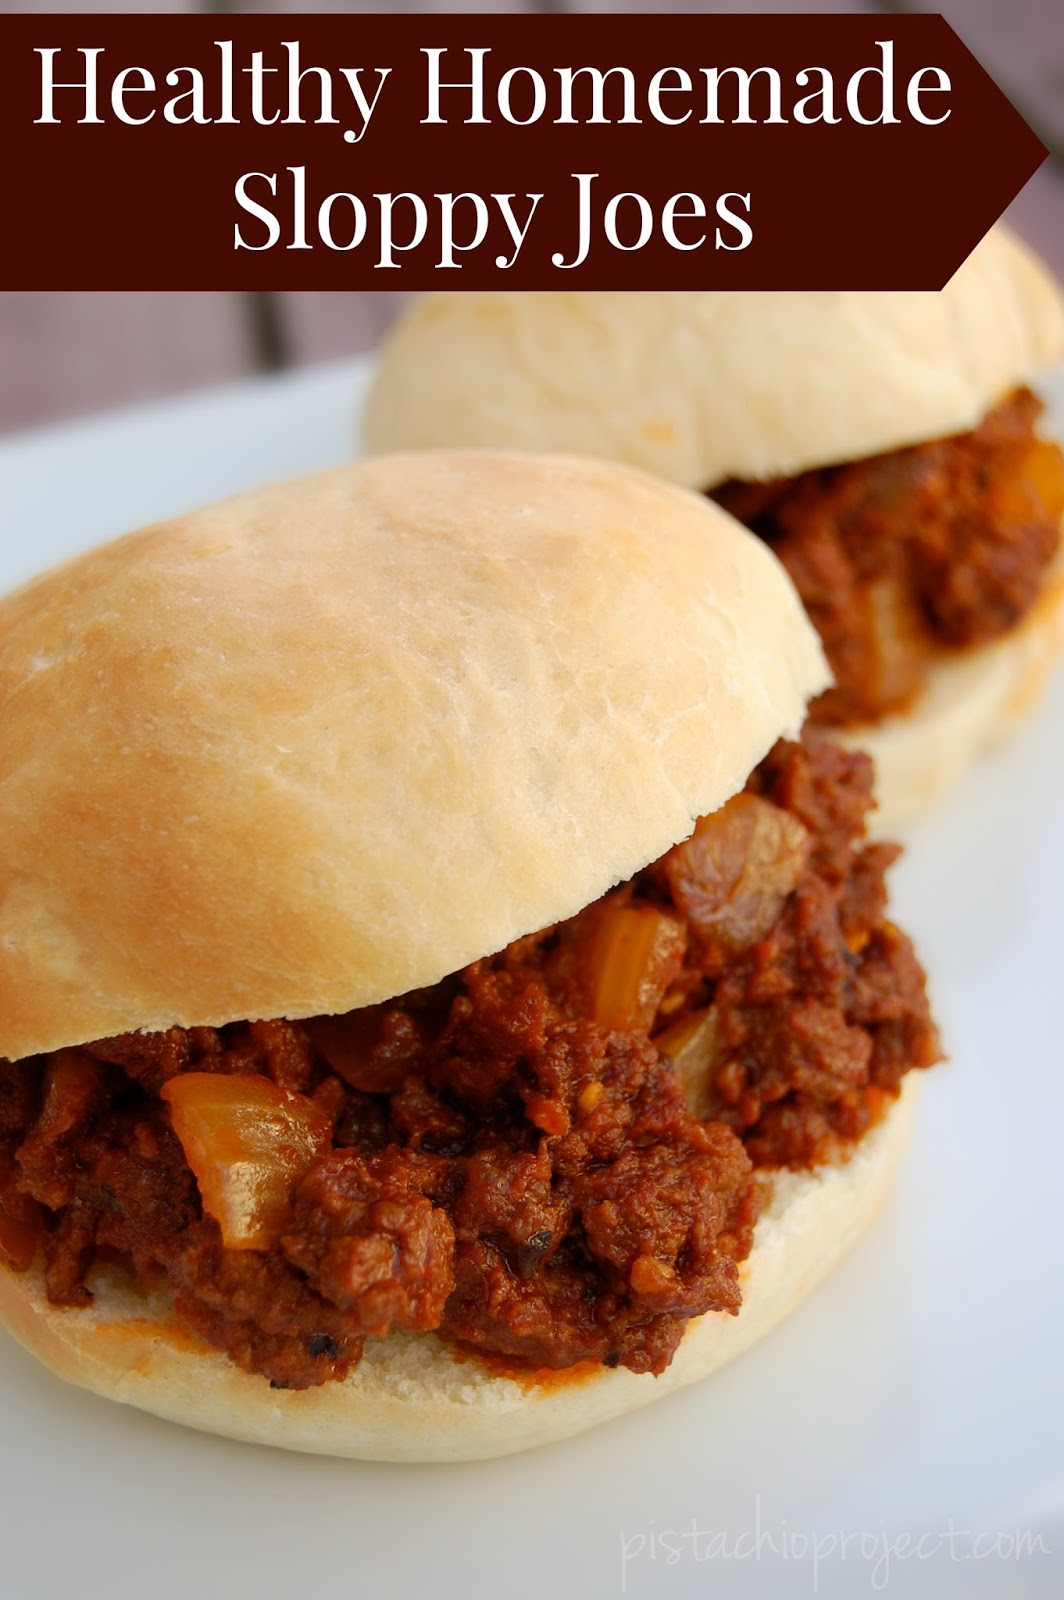 Are Sloppy Joes Healthy  Healthy Homemade Sloppy Joes The Pistachio Project